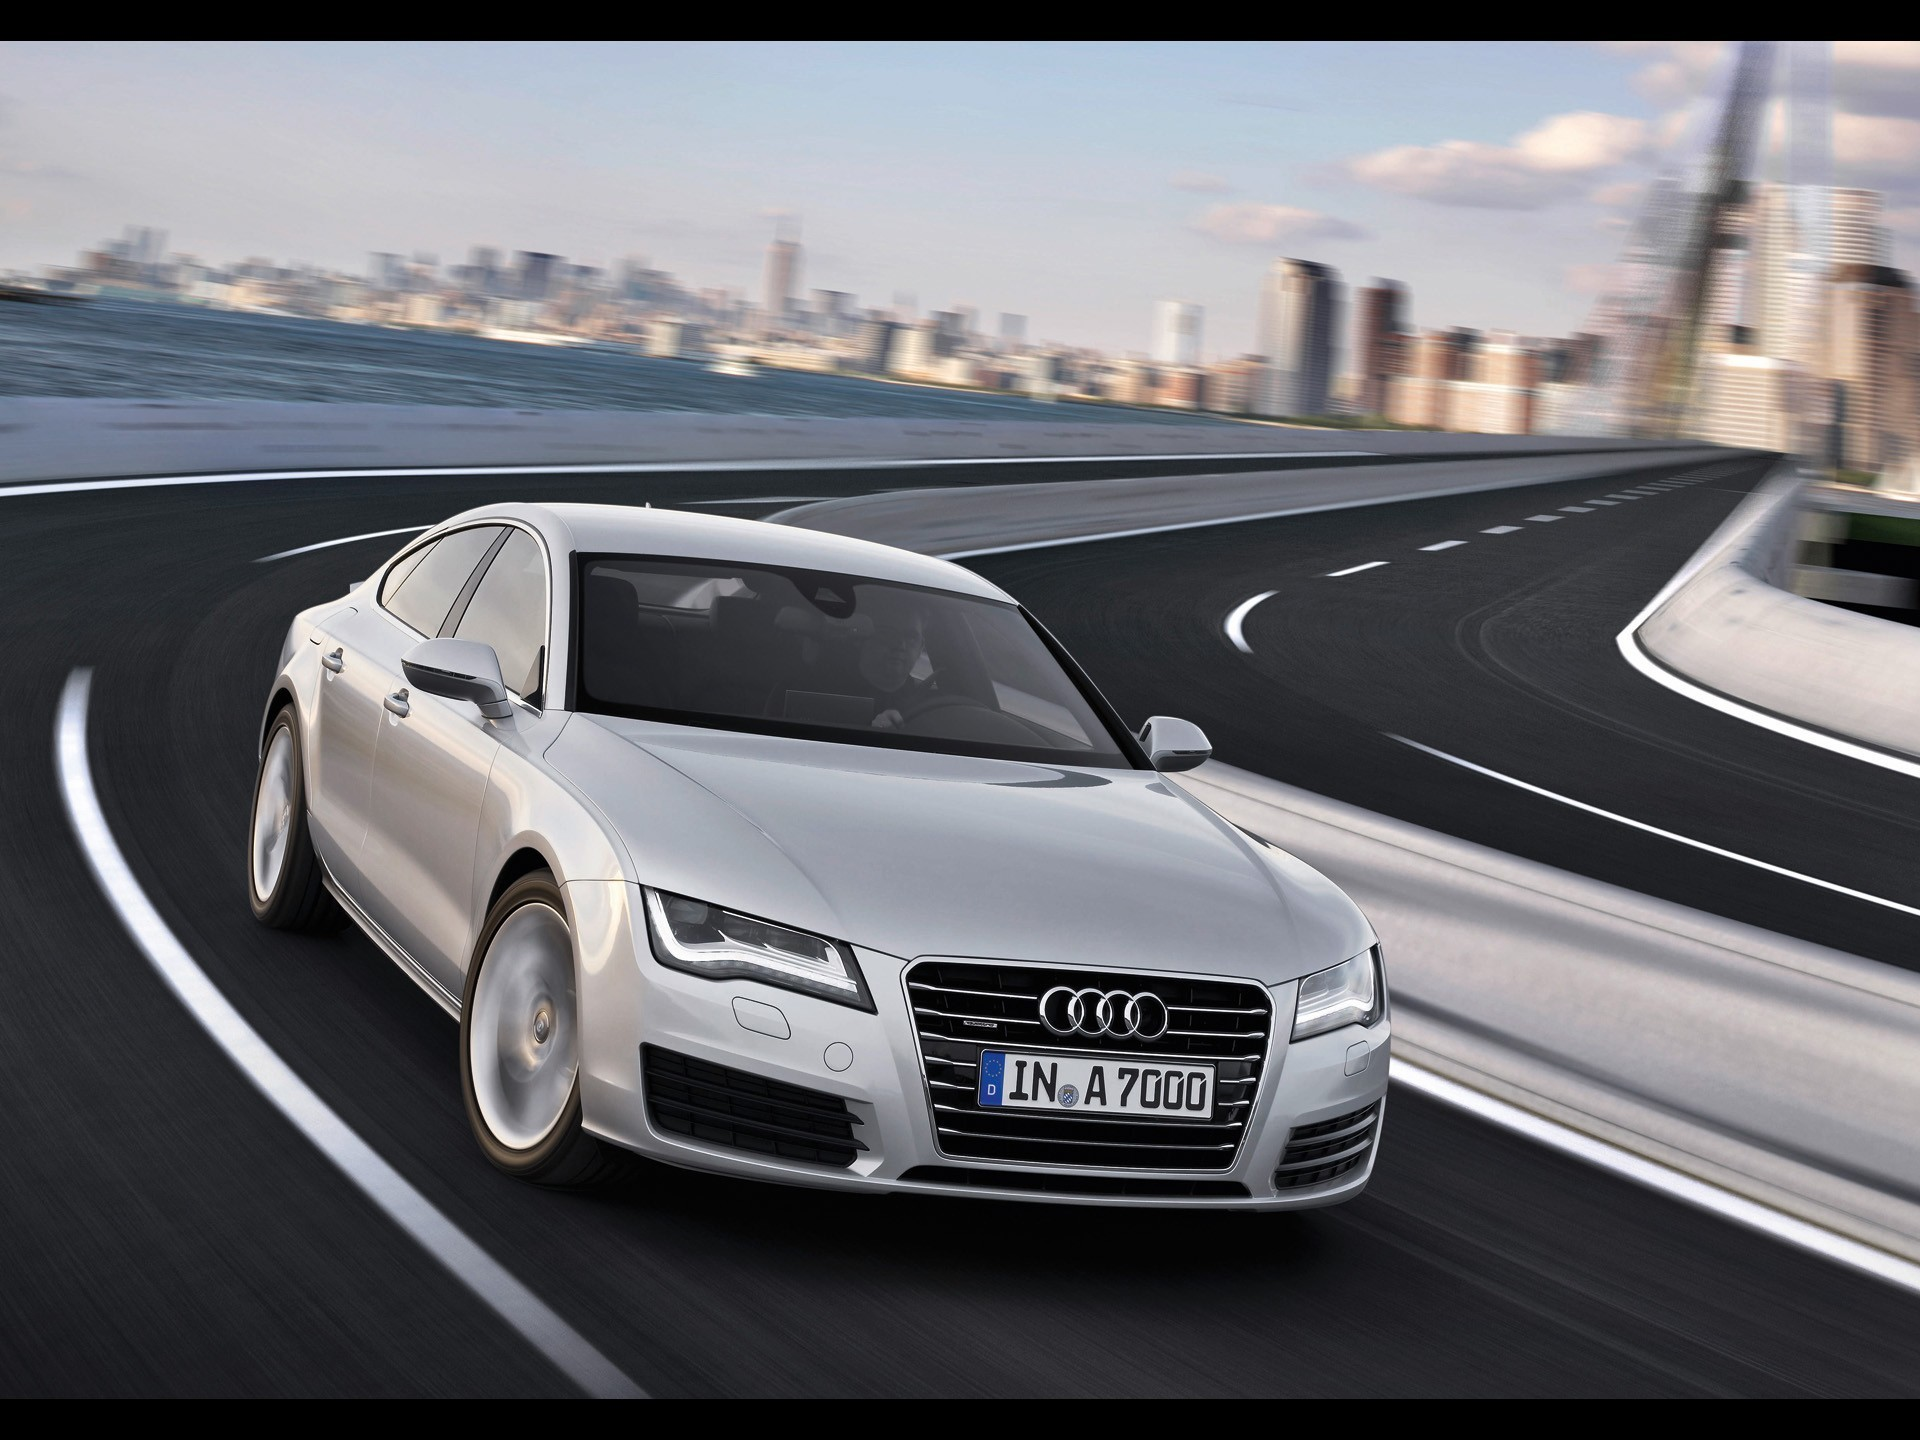 cars vehicles audi a7 HD Wallpaper